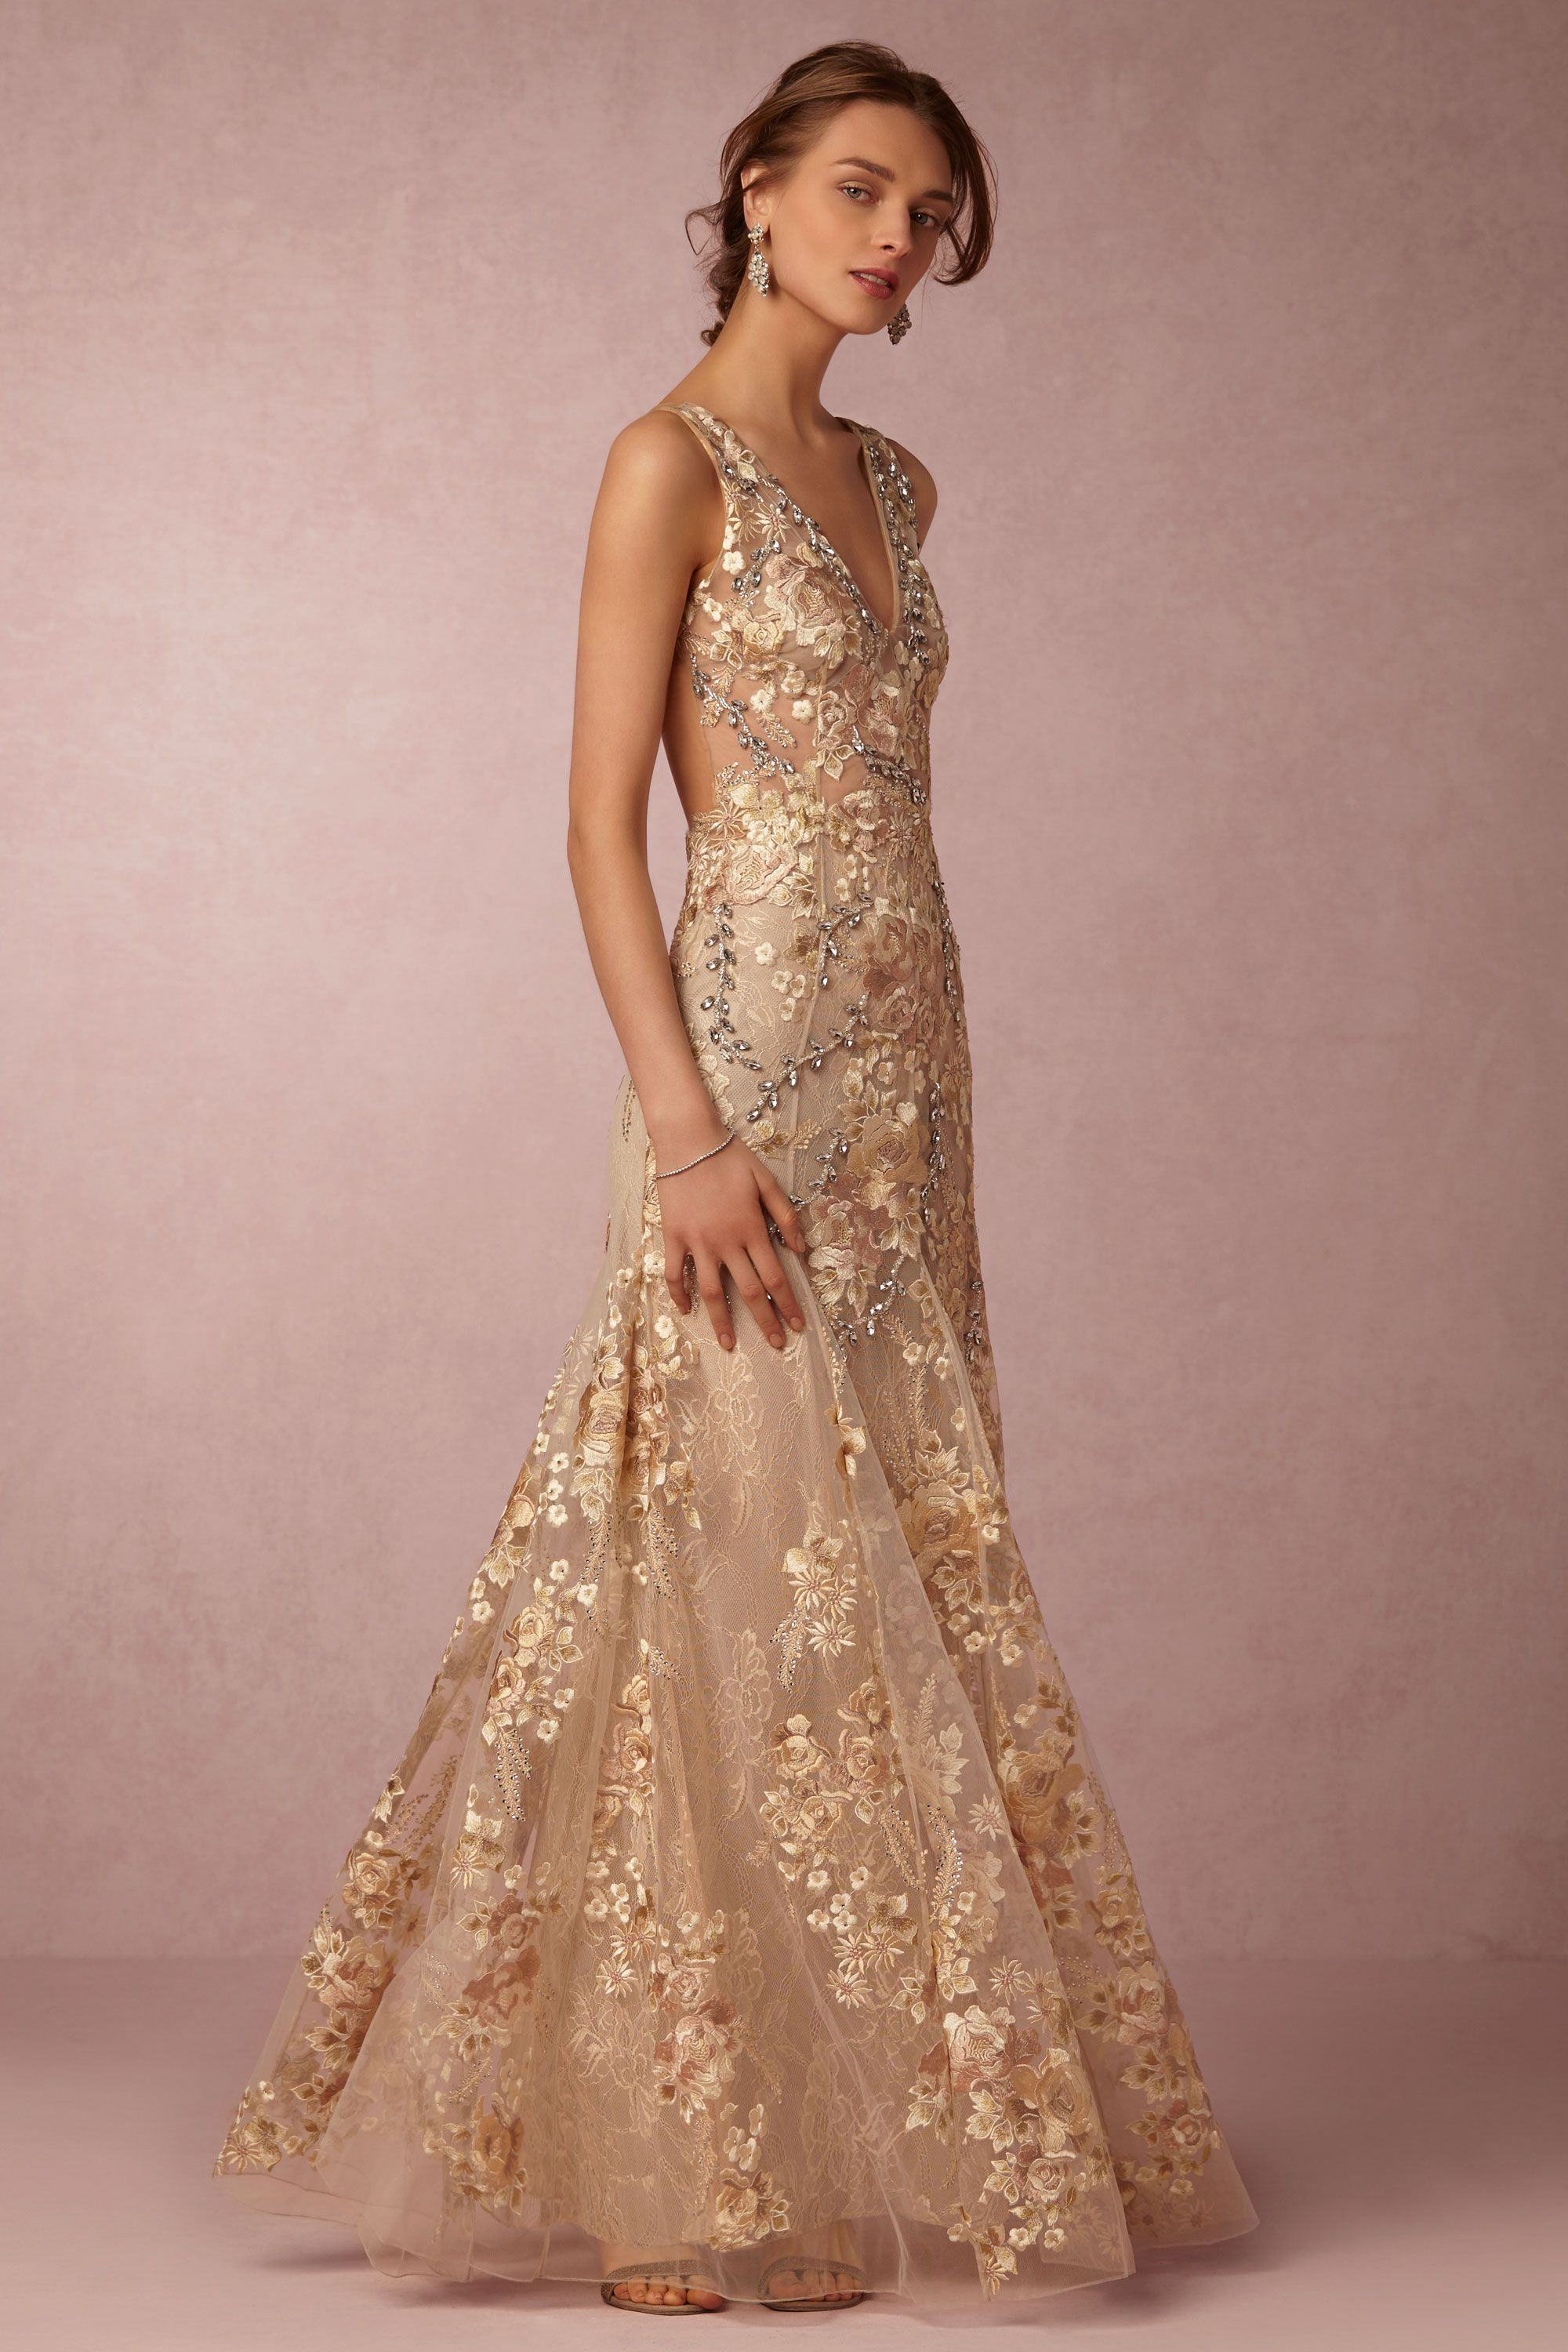 Gabriela Gown from @BHLDN | ☆ Outfits / Fiesta | Pinterest ...